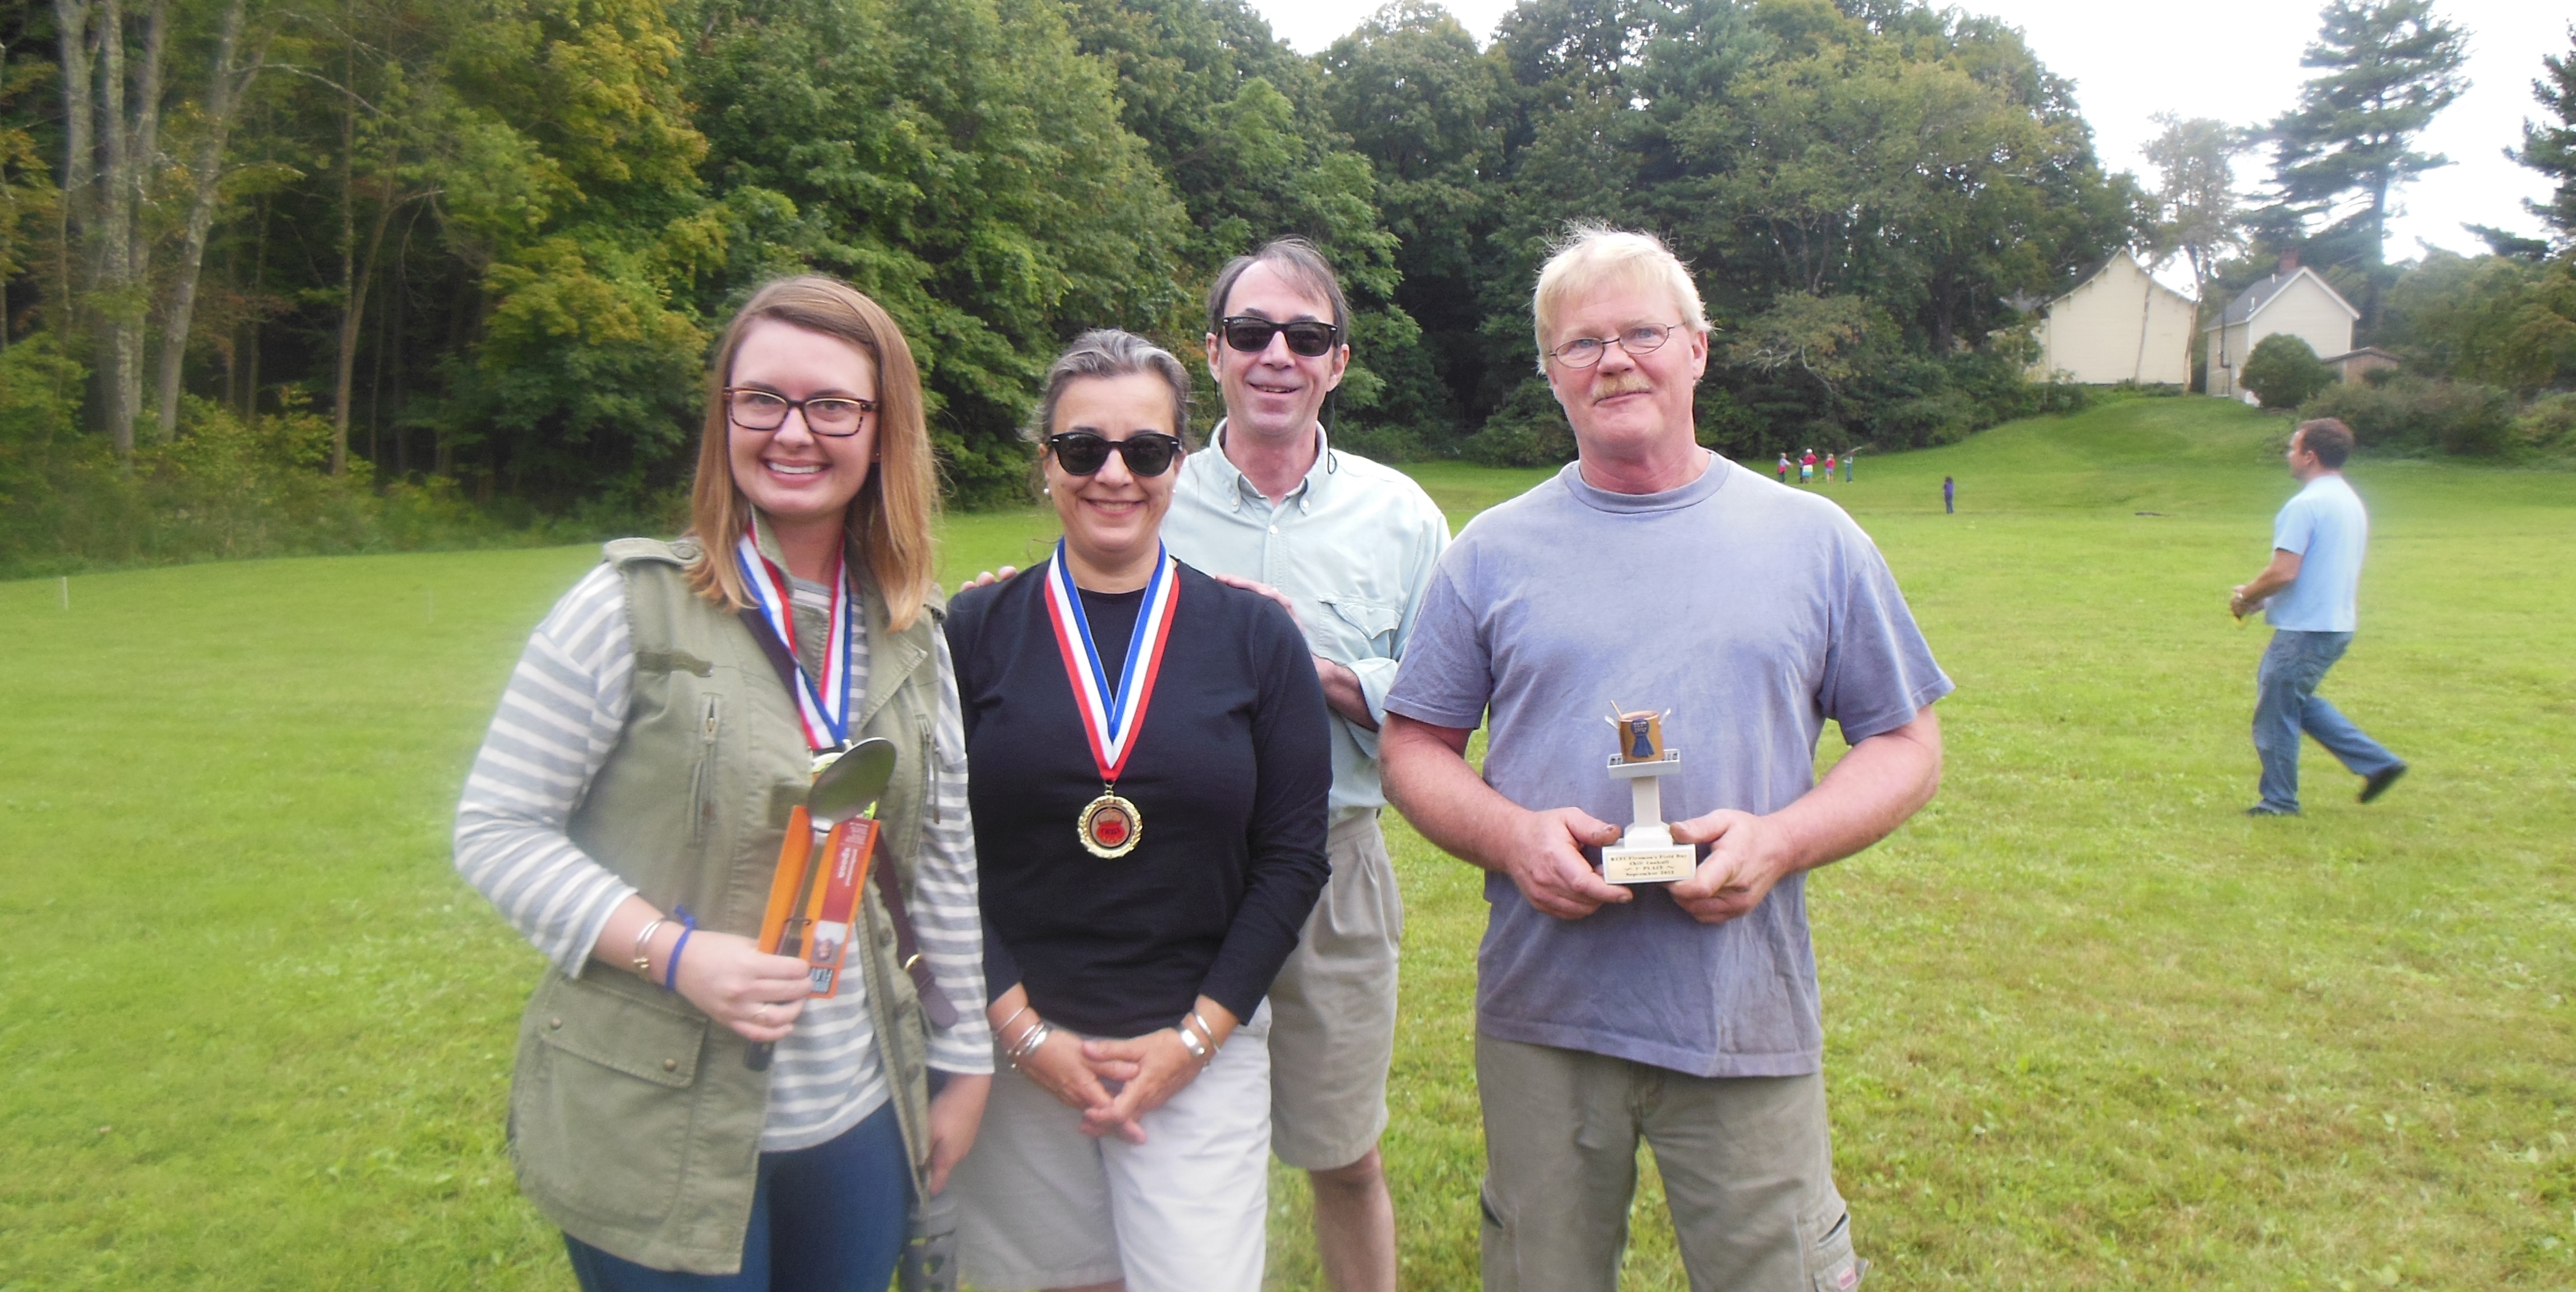 The Winners: Allyson Traver, Chris and Sharla Mullany , and Paul Butler.